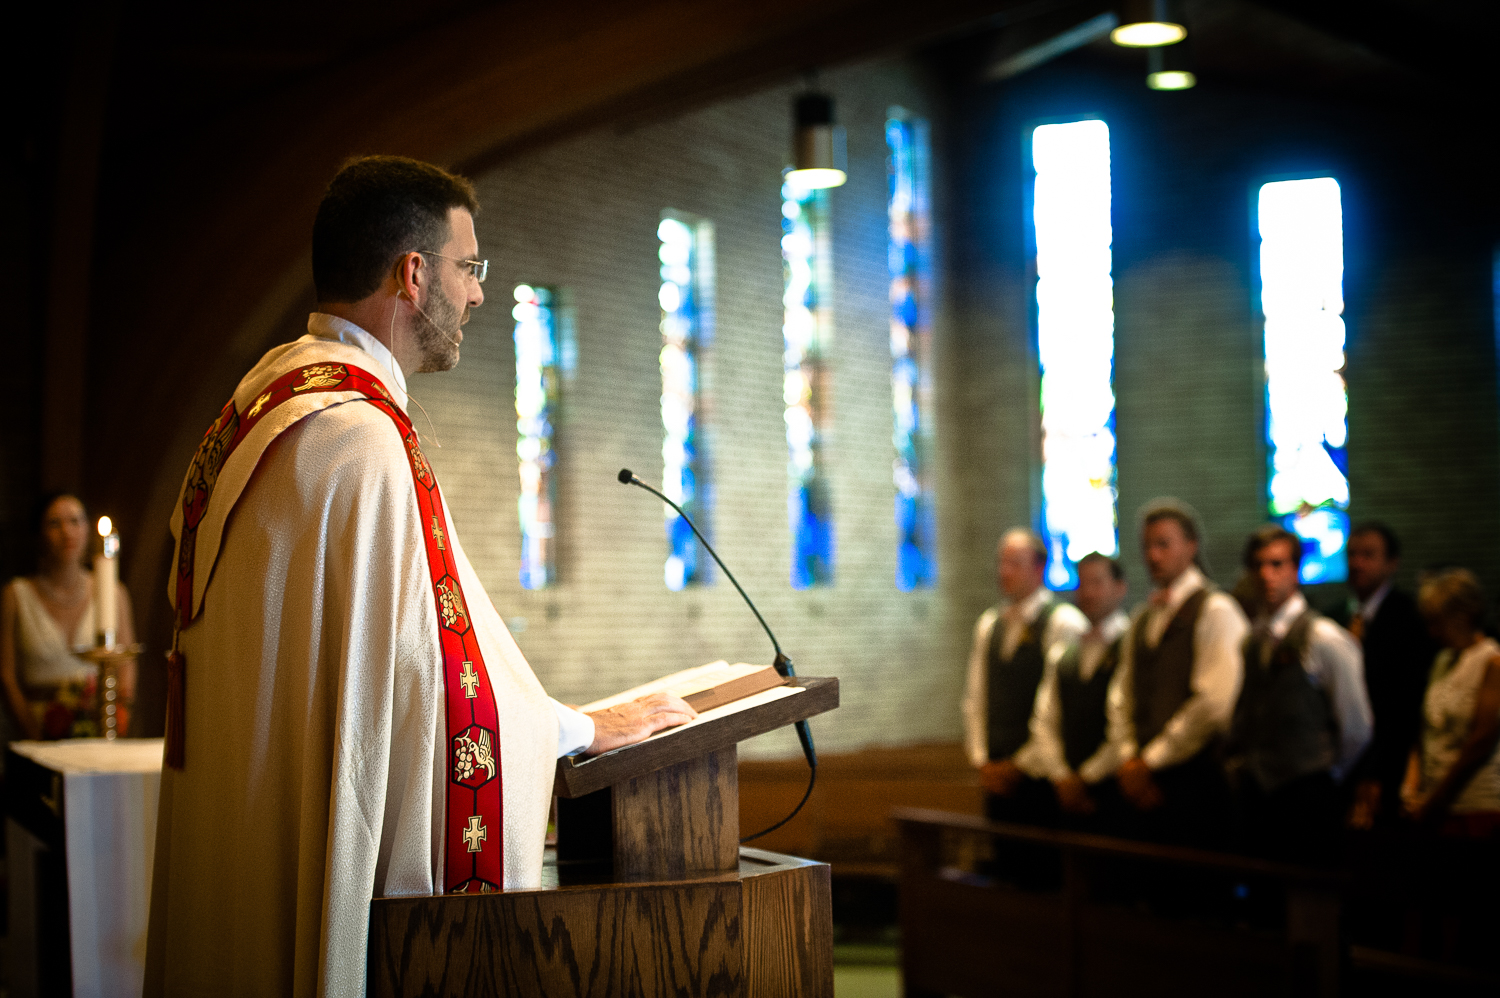 St. Albert's Church Wedding Ceremony in Minneapolis, MN